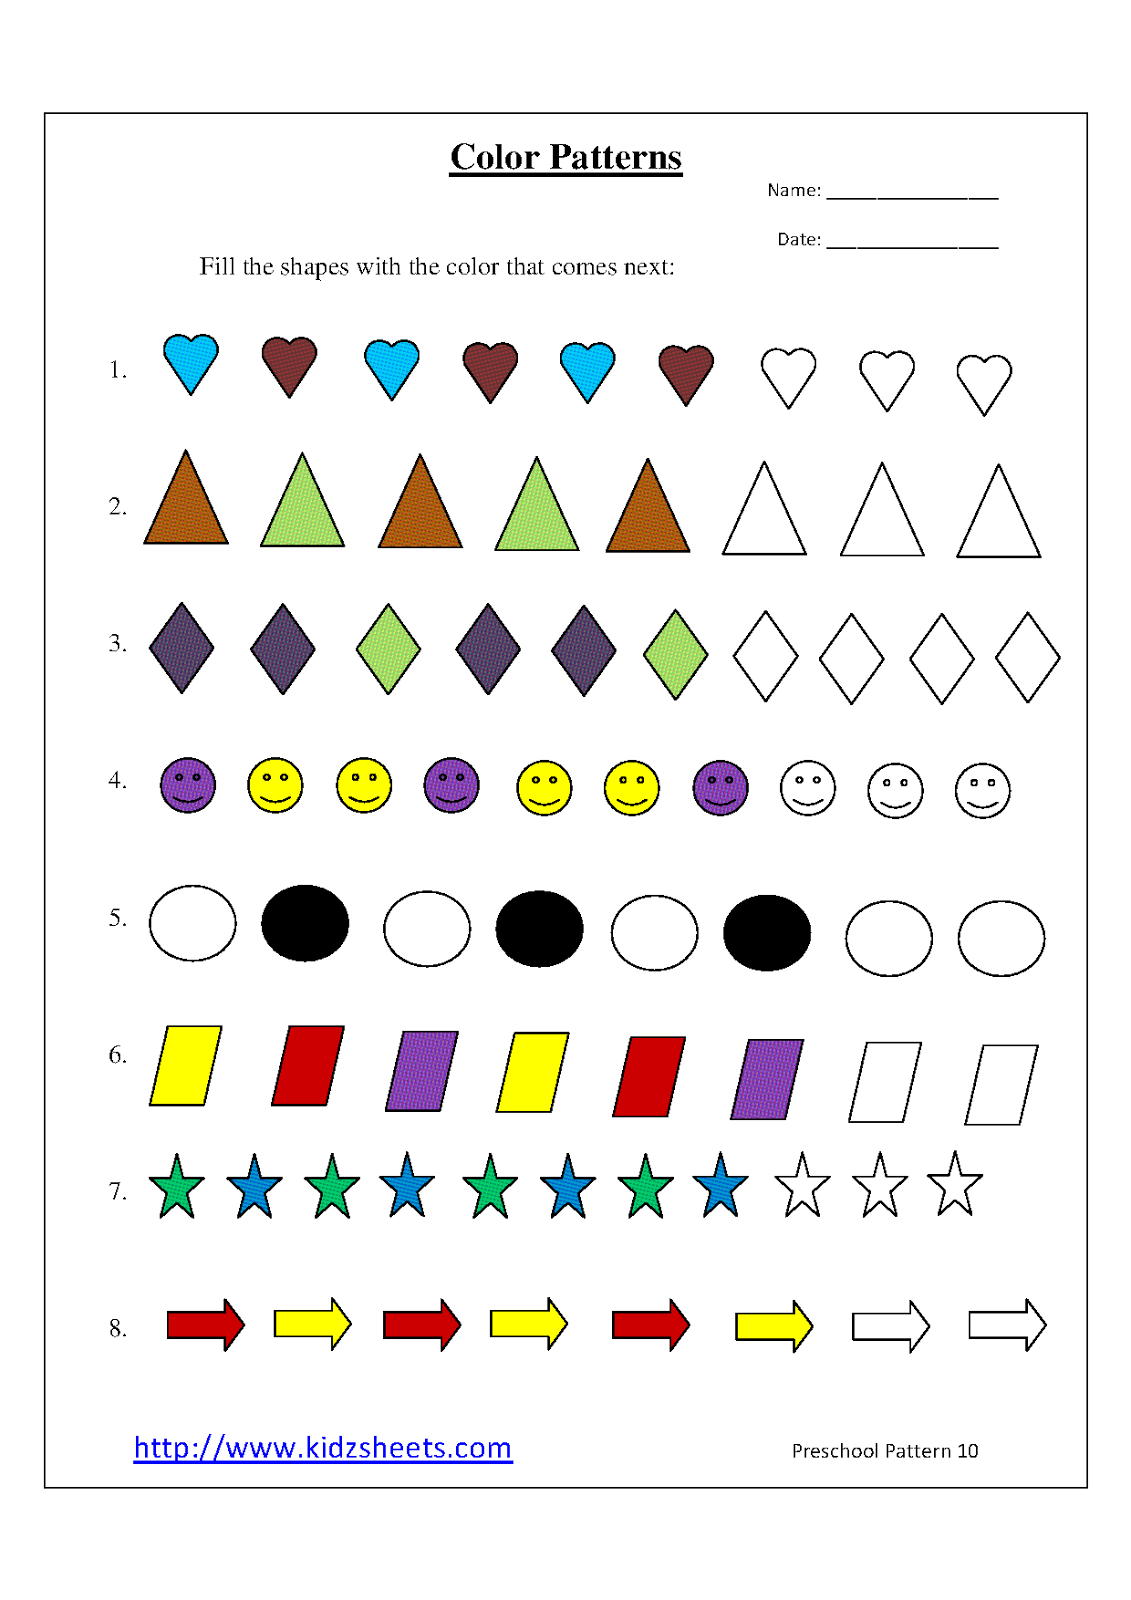 Kidz Worksheets Preschool Color Patterns Worksheet10